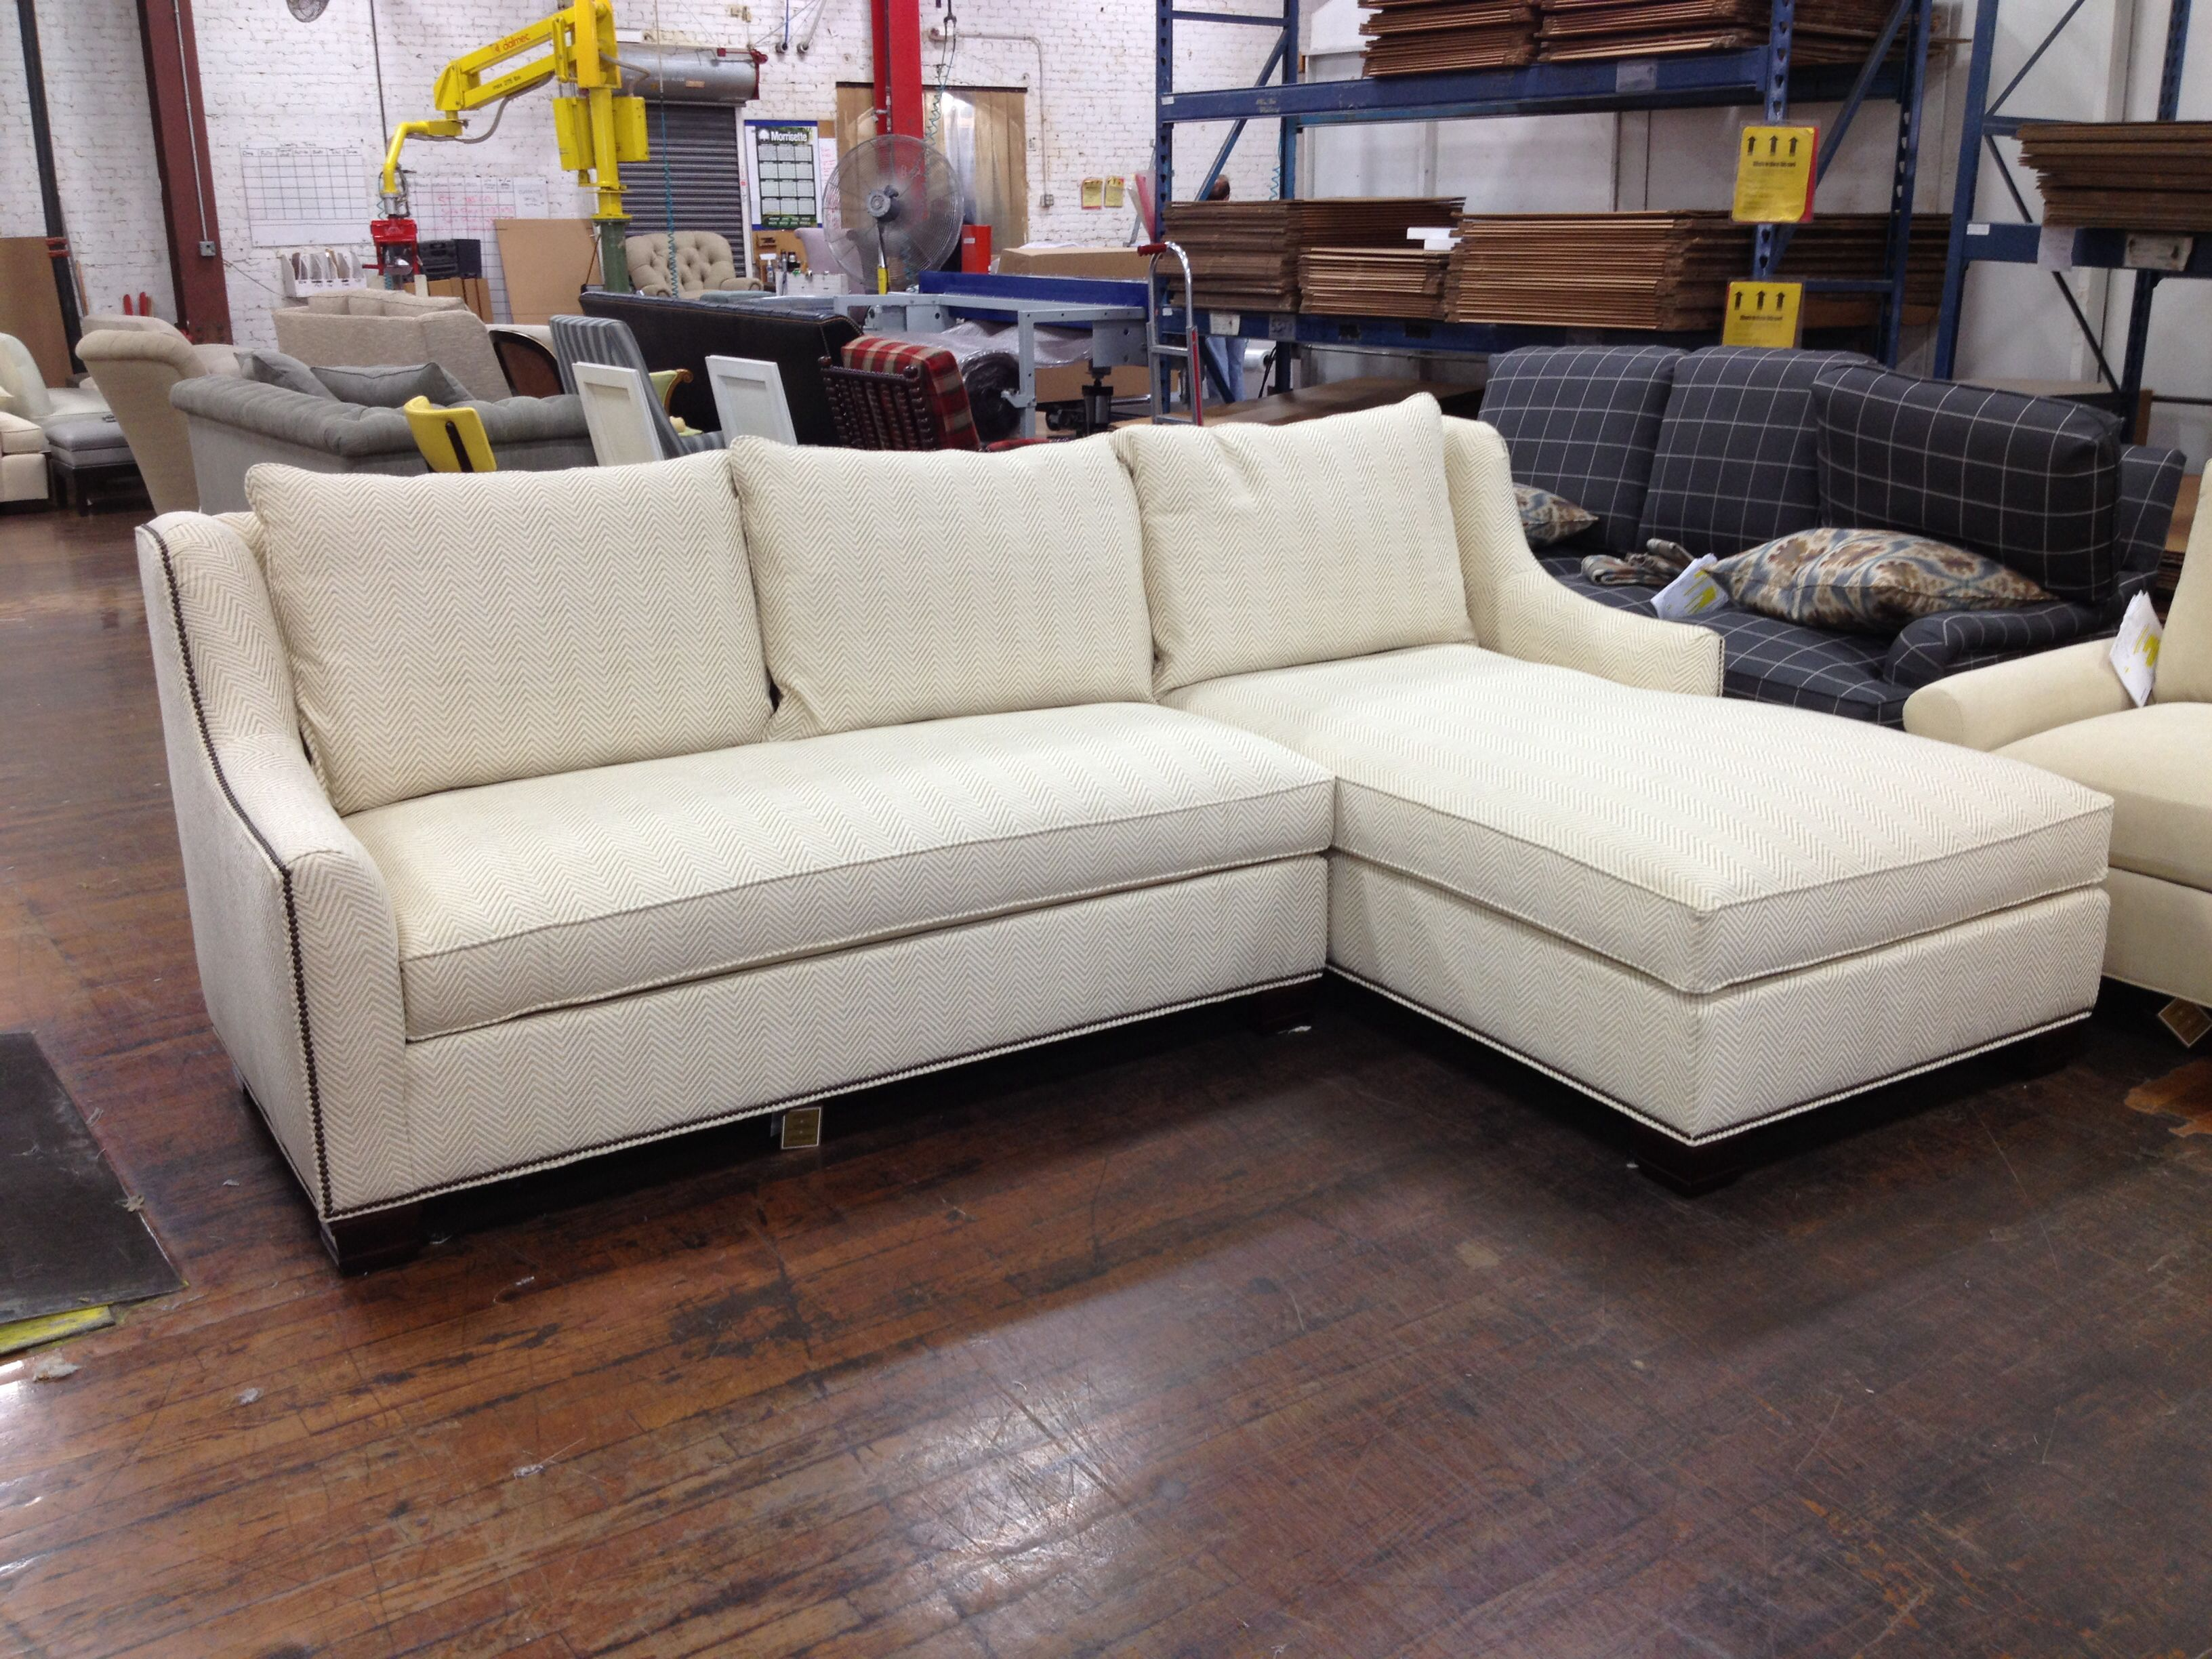 A custom Sutton Sectional made to order from the Sutton